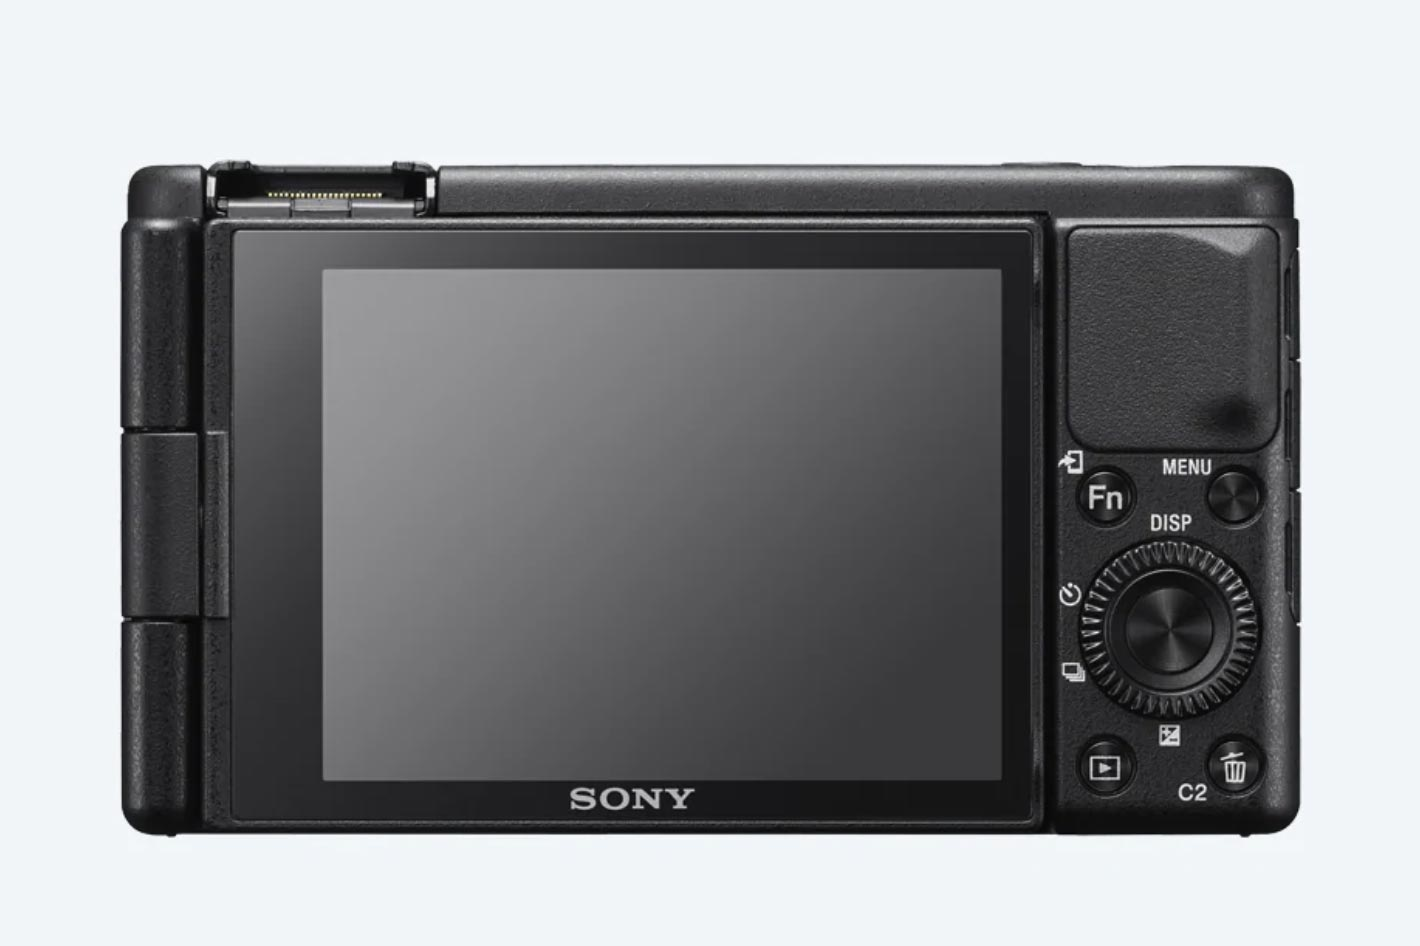 Sony ZV-1, built to meet the needs of today's video creators